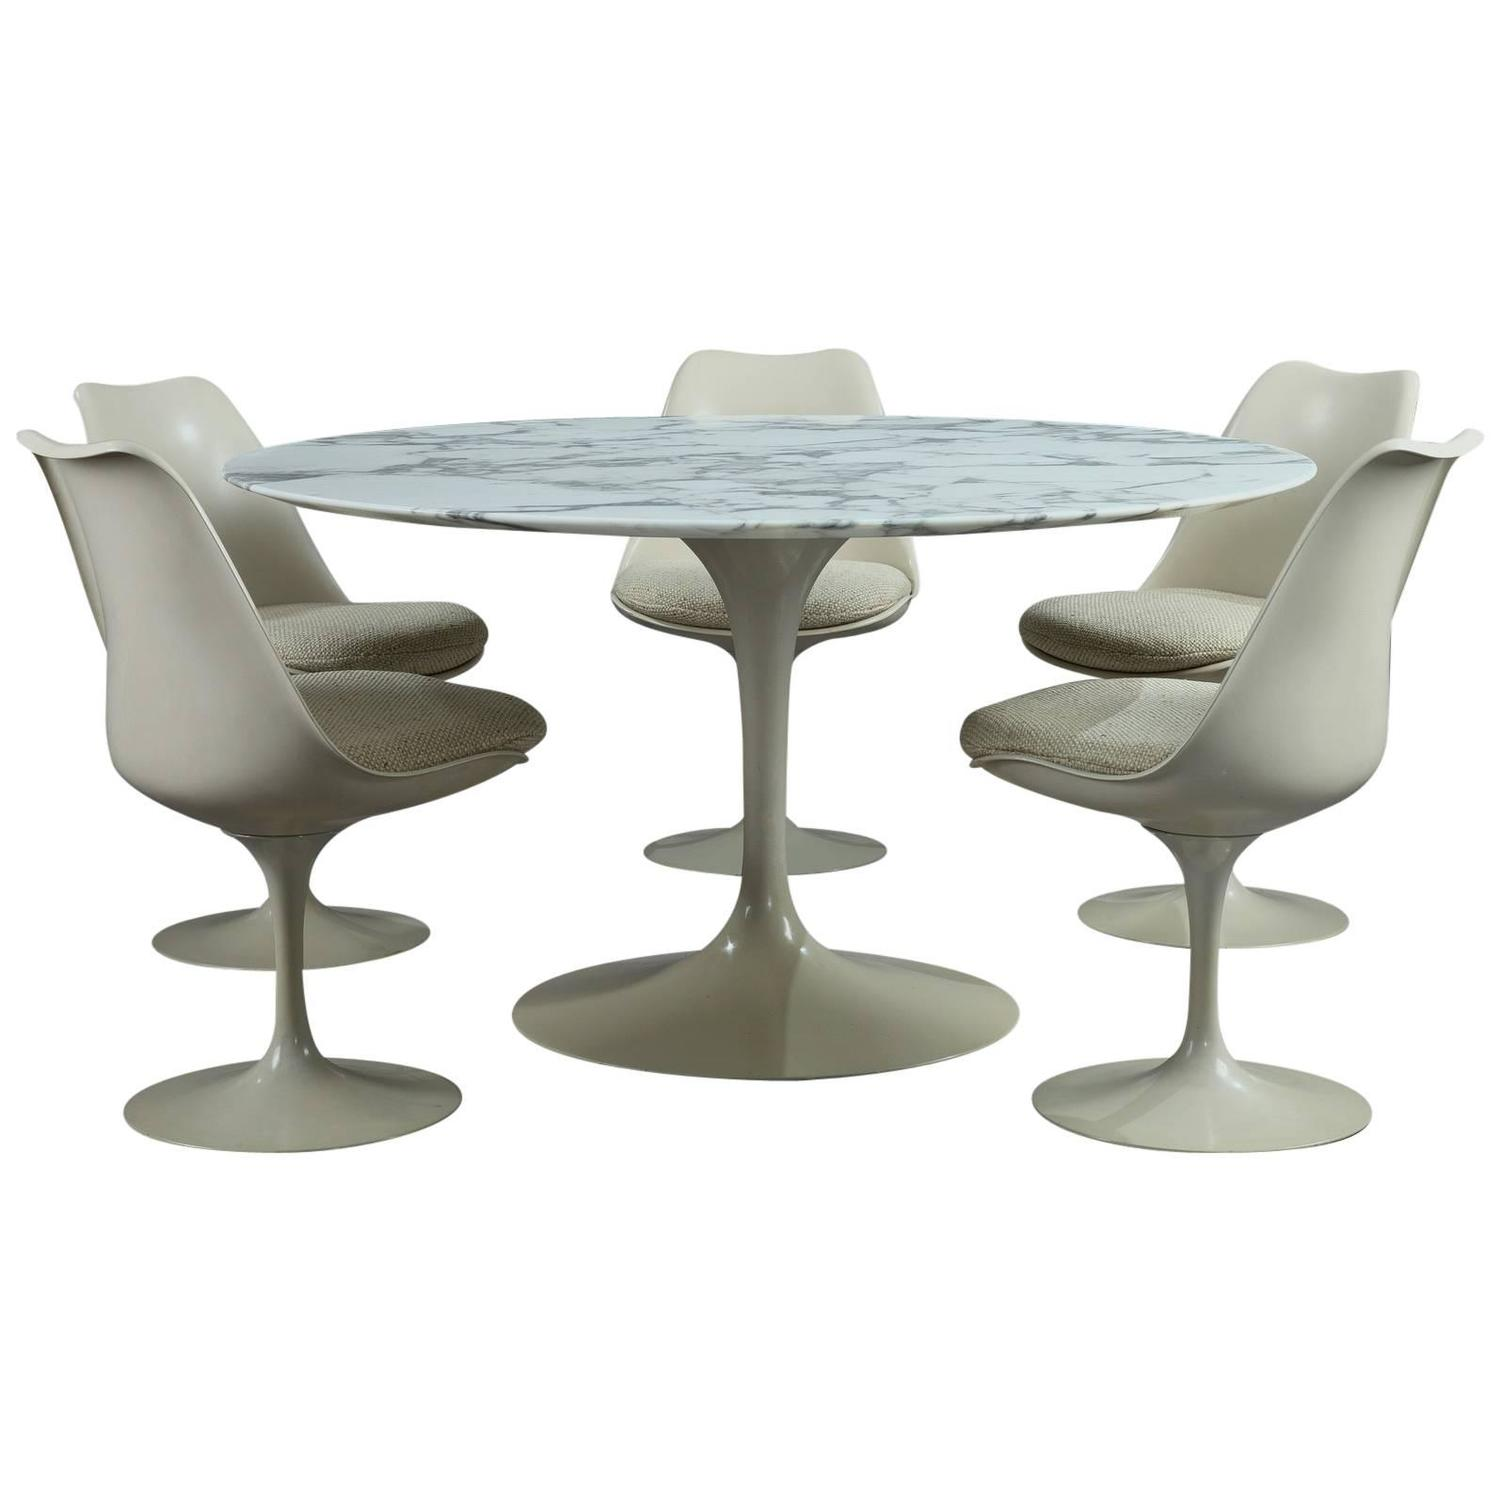 Tulip Table And Chairs Tulip Dining Table And Set Of Five Tulip Seats By Eero